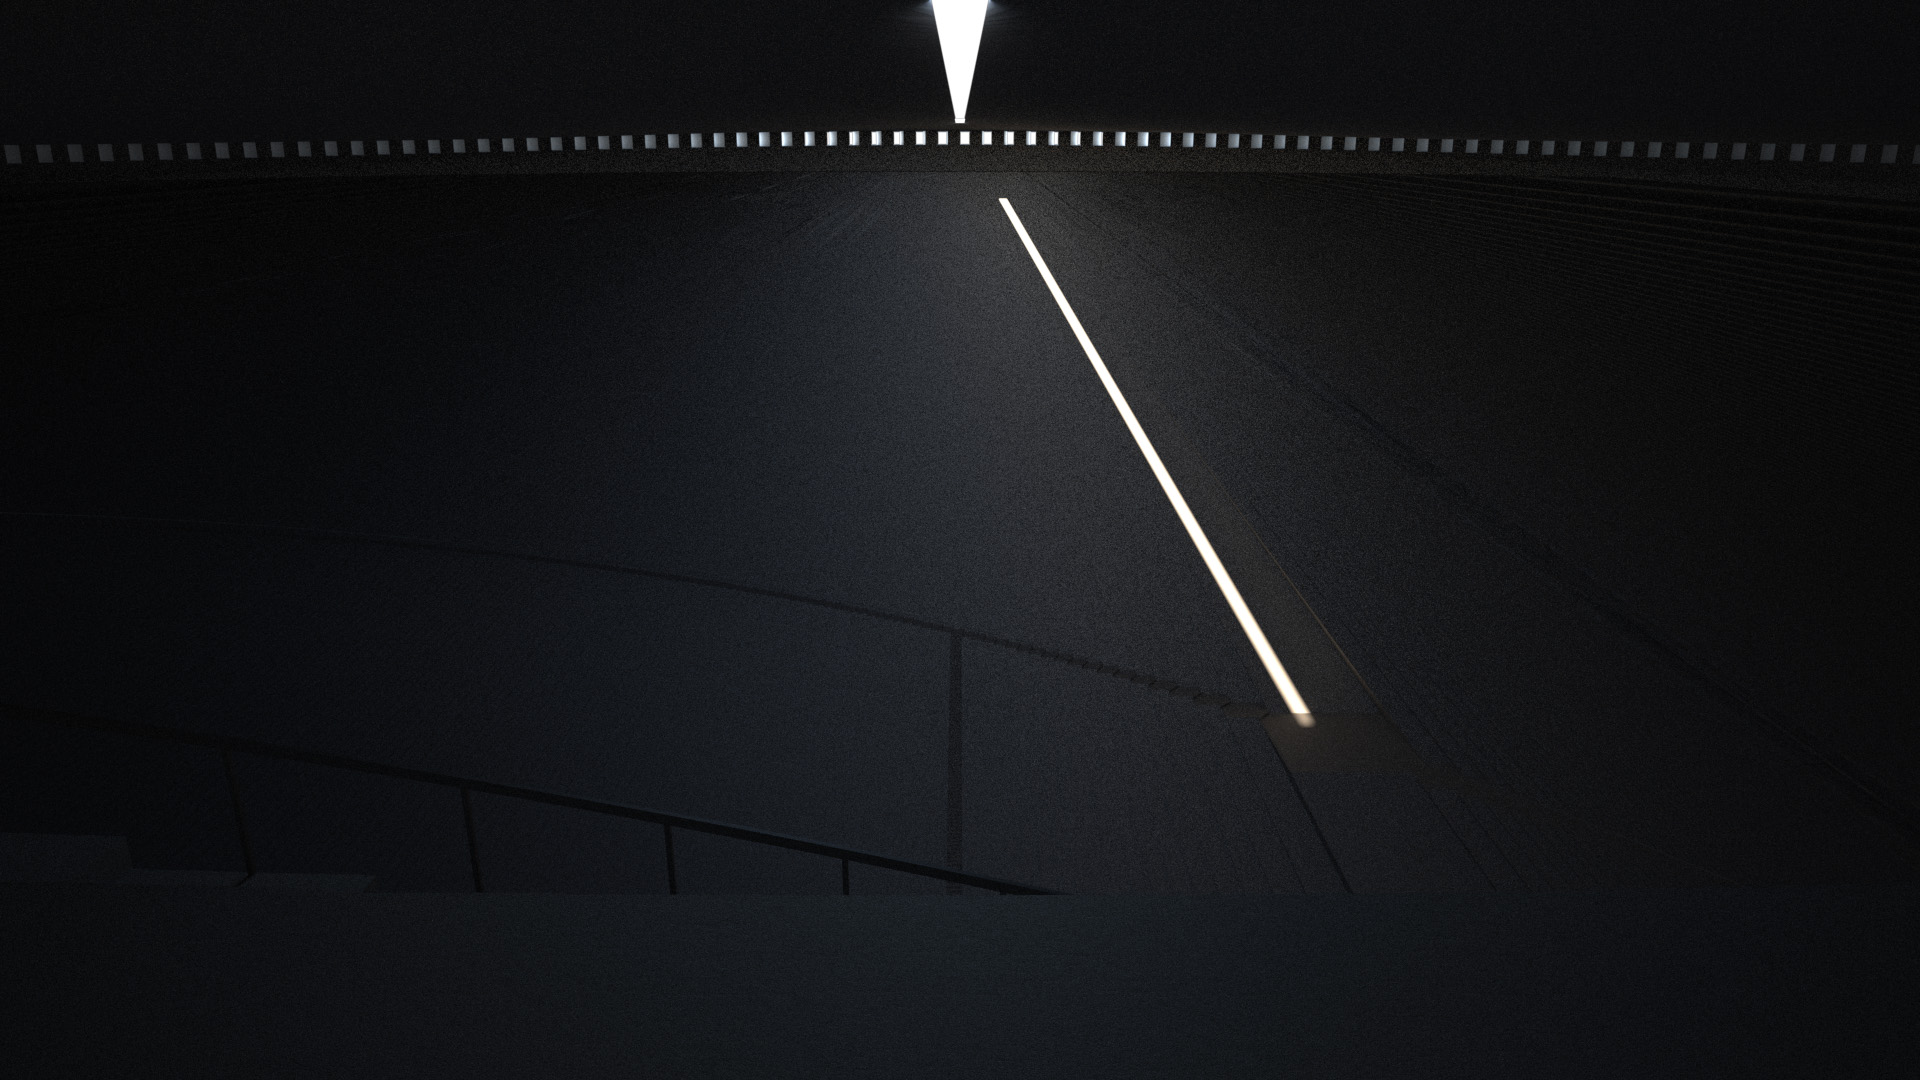 At 78° a line of light follows people around the space.